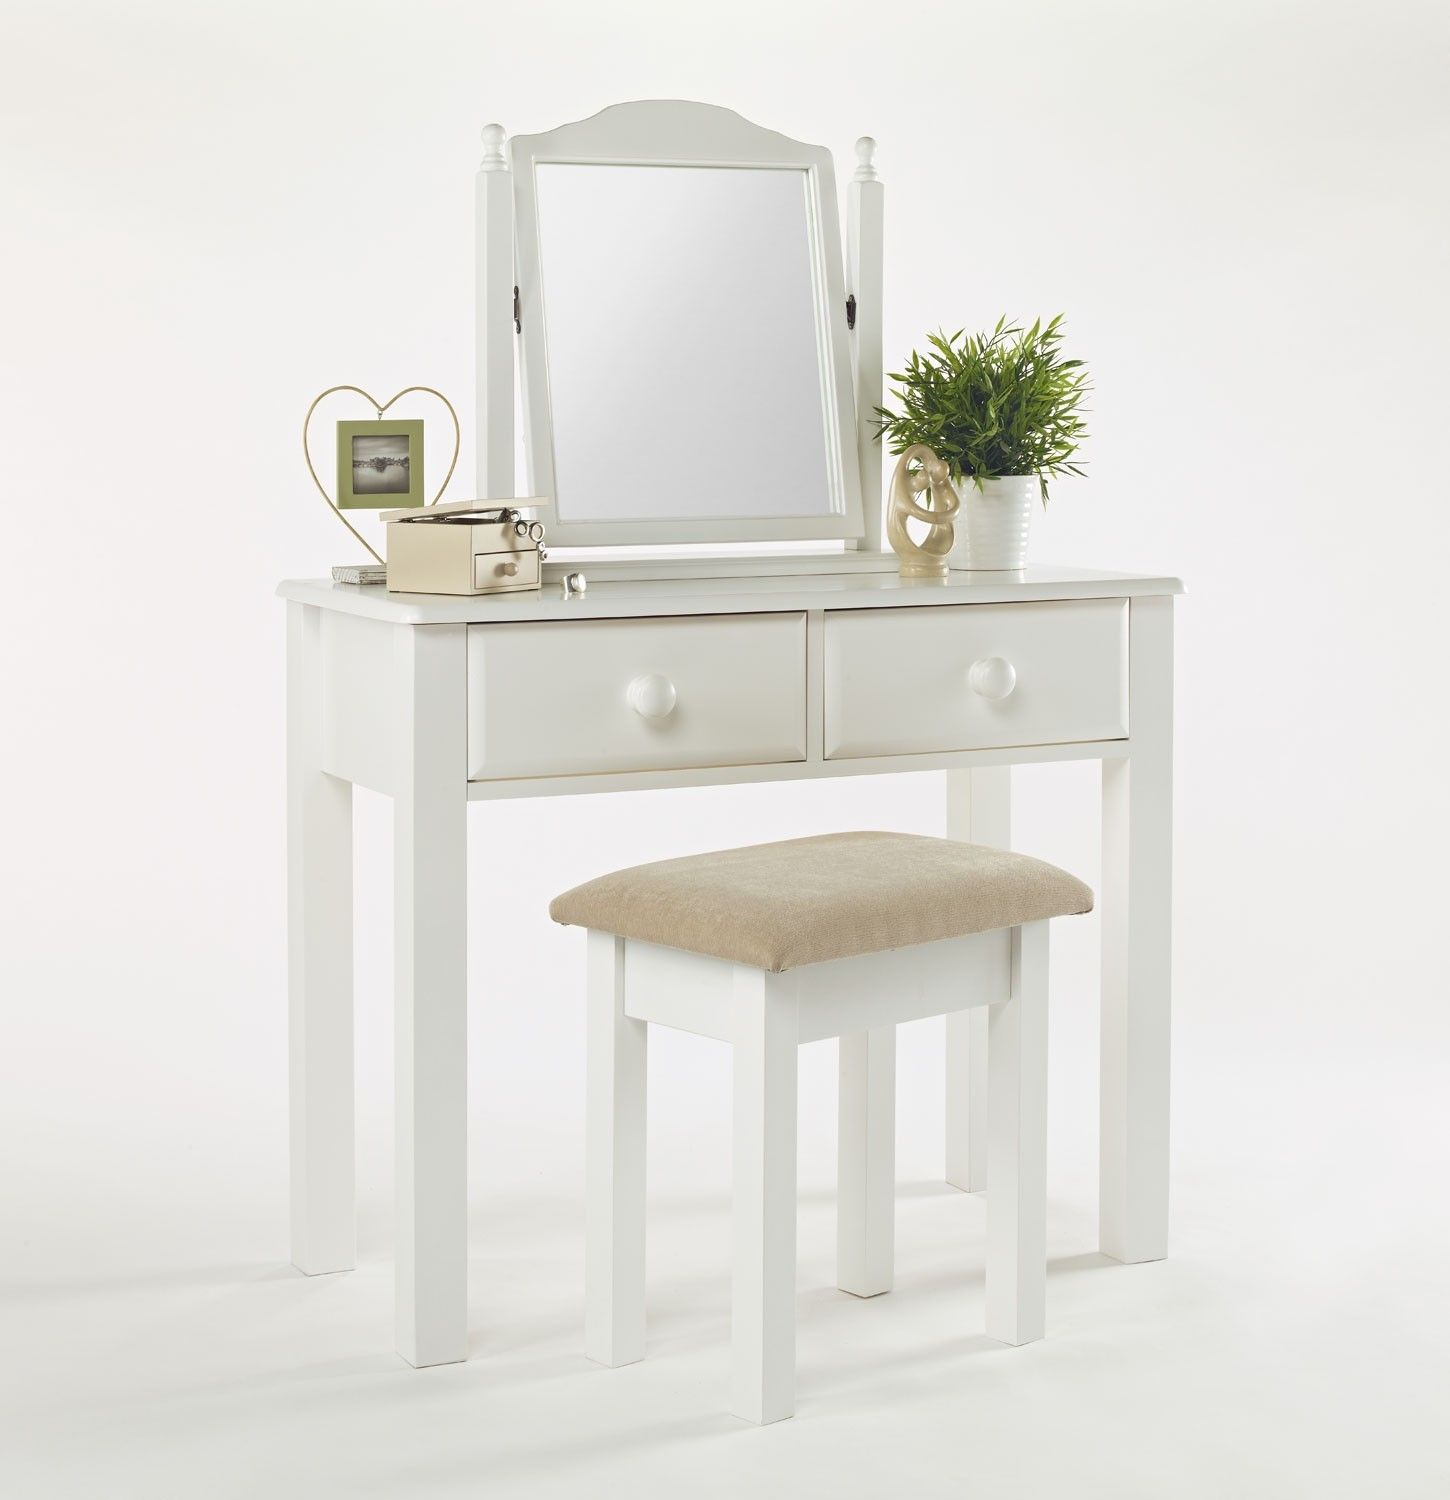 Bedroom furniture dressing table stools - White Wooden Dressing Table Stool A Dressing Stand Or Table Is Just One Of The Most Important Furniture In Houses That Are